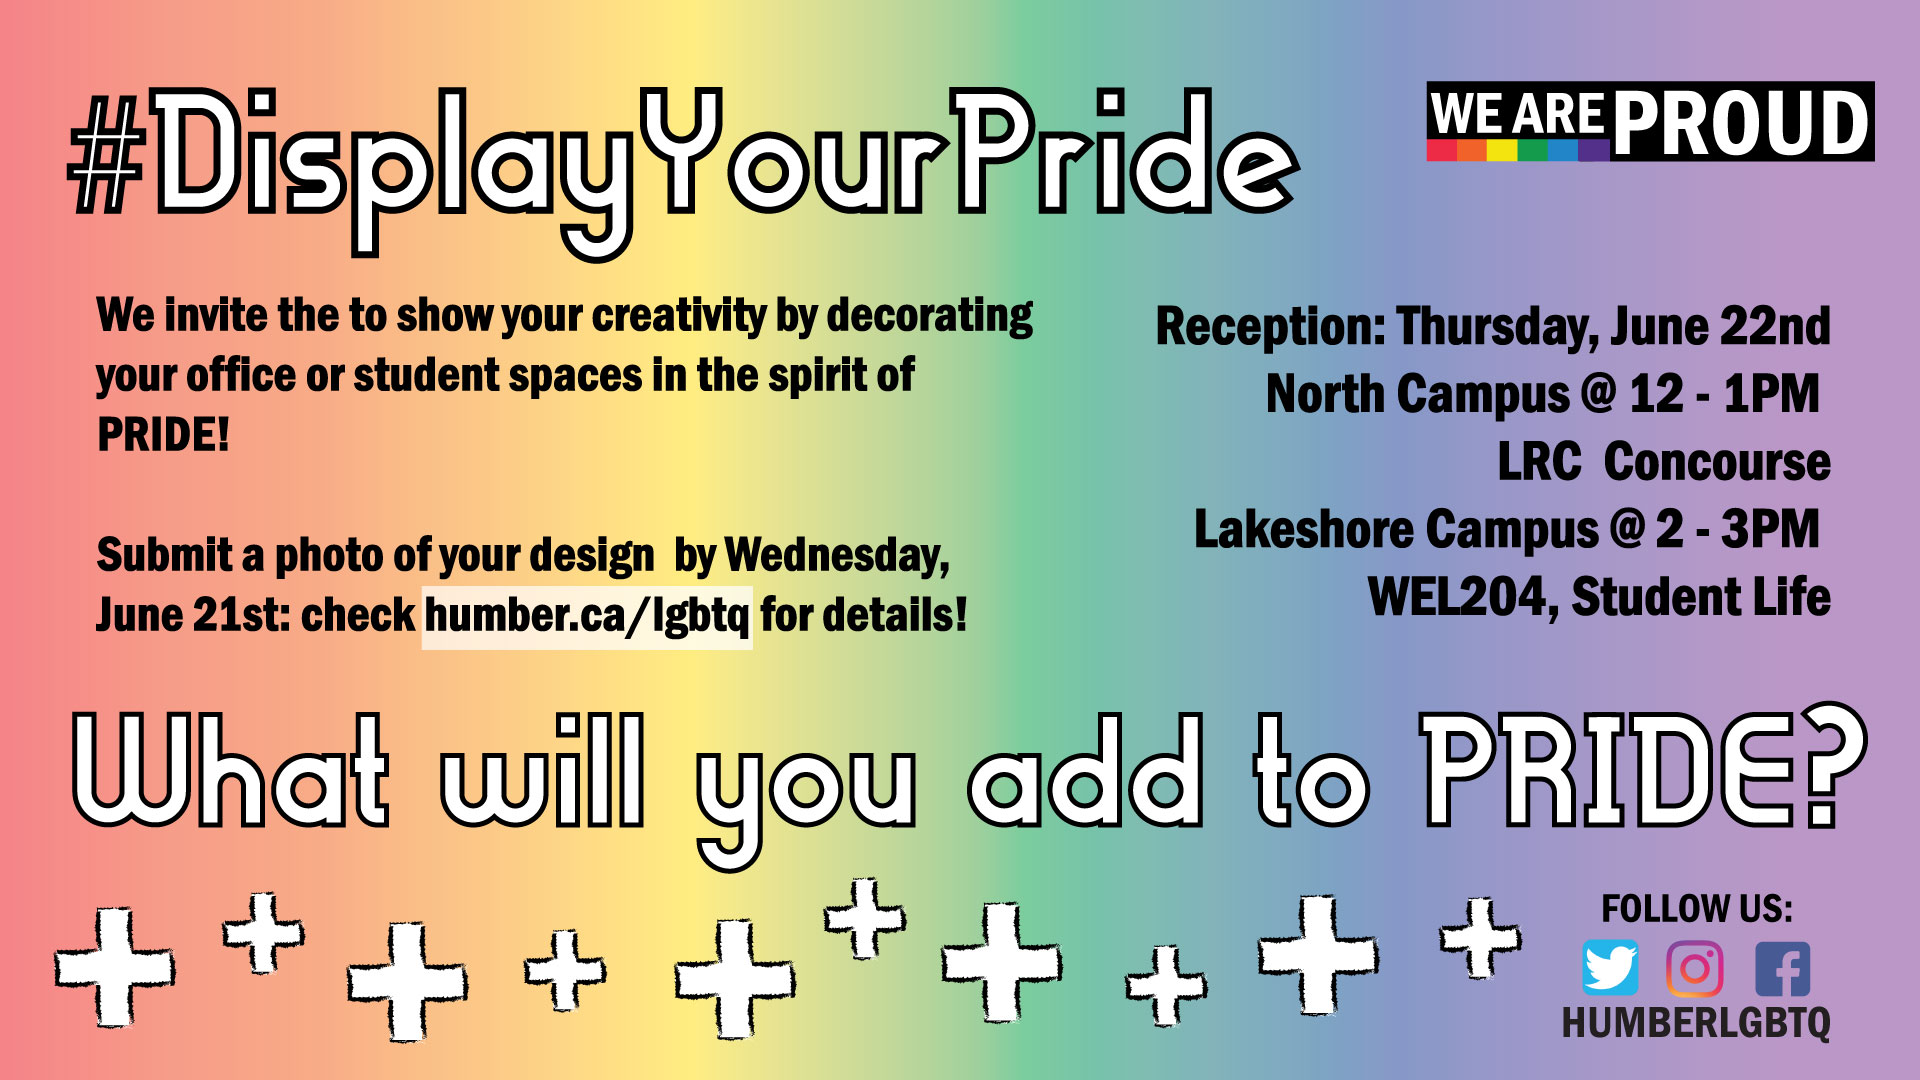 #DisplayYourProide title on rainbow background. We invite you to show your creativity by decorating your office or student spaces in the spirit of PRIDE! Submit a photo of your design by Wednesday June 21st to LGBTQ@humber.ca to enter our optional contest. Display Your Pride Reception locations as in description. What will you add yo Pride? Follow us on social media @humberLGBTQ